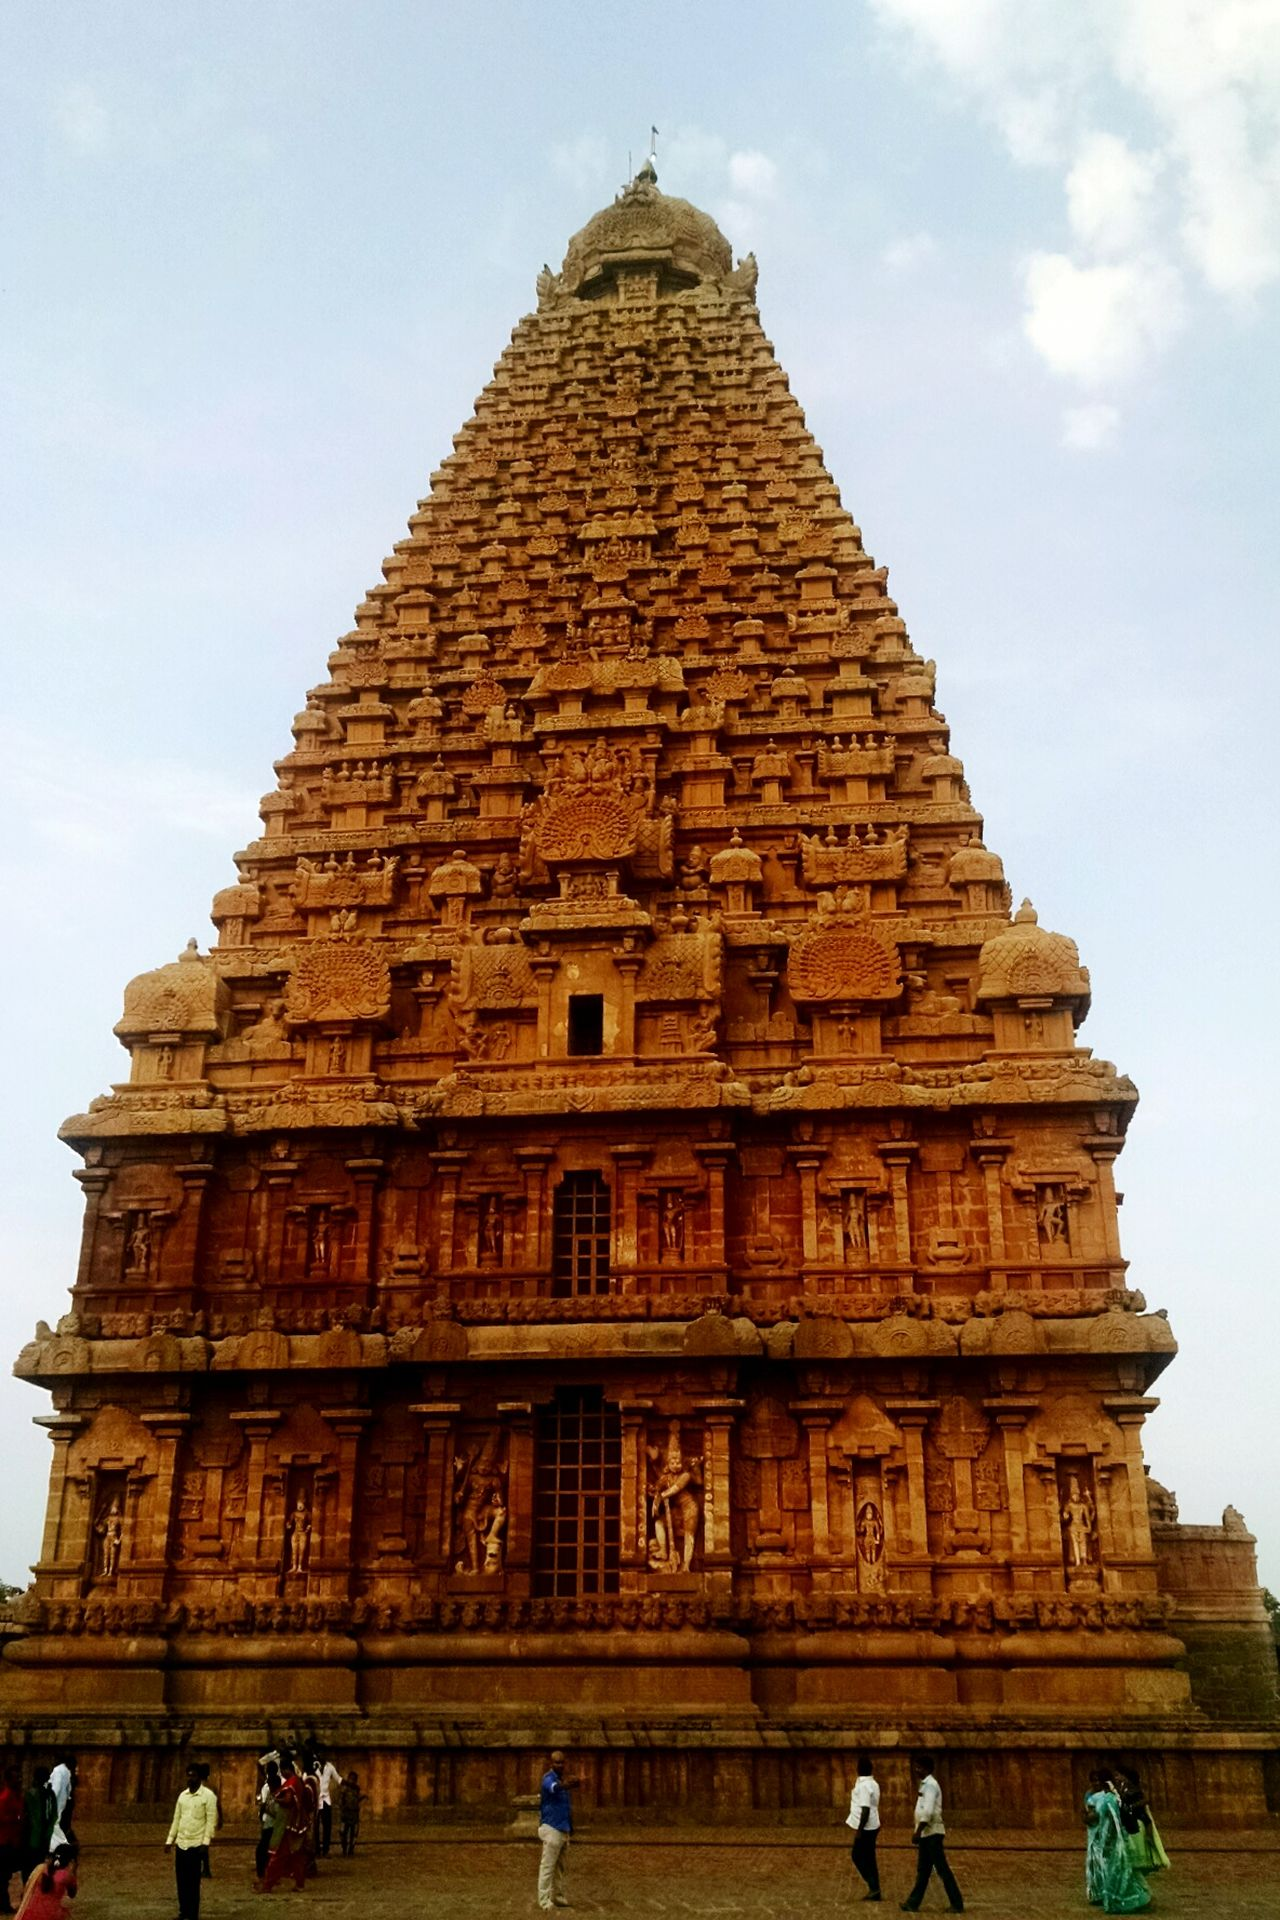 Religion Travel Destinations Architecture Statue Tourism History Travel Spirituality Sky Beauty Vacations Place Of Worship Archaeology Monument Vacations Tamilnadu India Tanjore Big Temple Ancient Civilization Ancient Old Ruin Travel